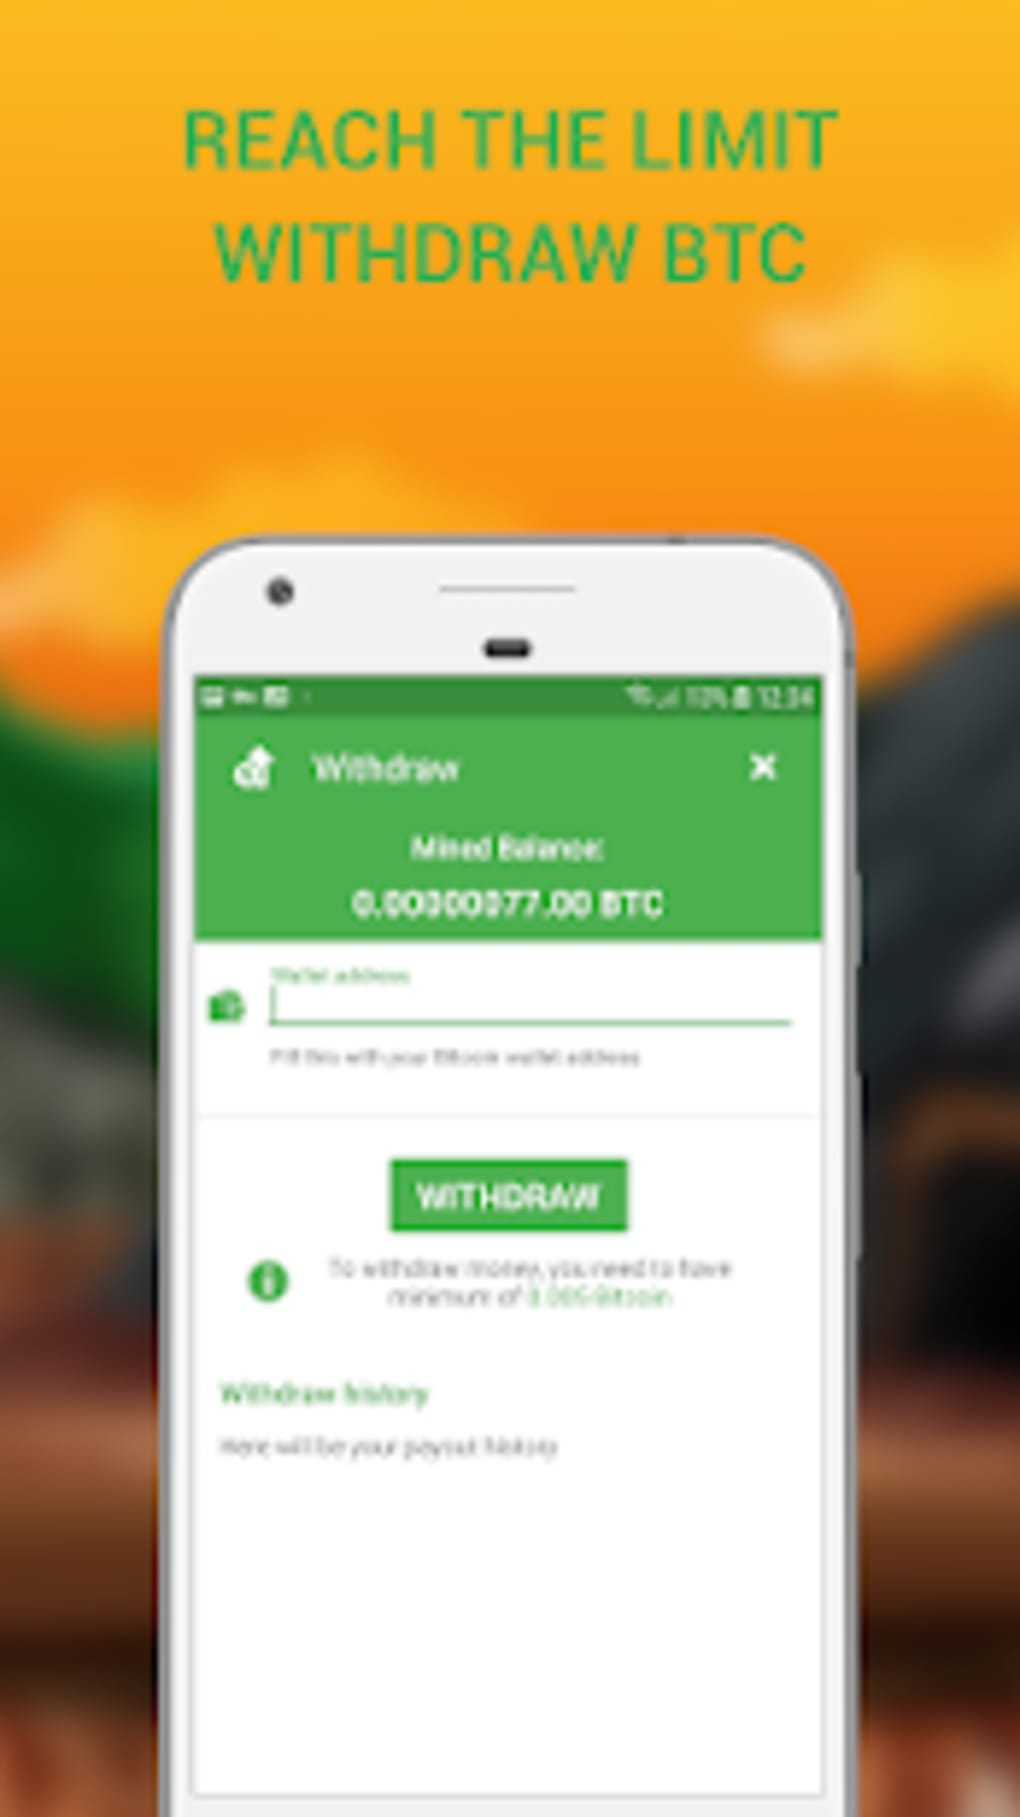 Cloud Bitcoin Miner Remote BTC Earnings for Android - Download